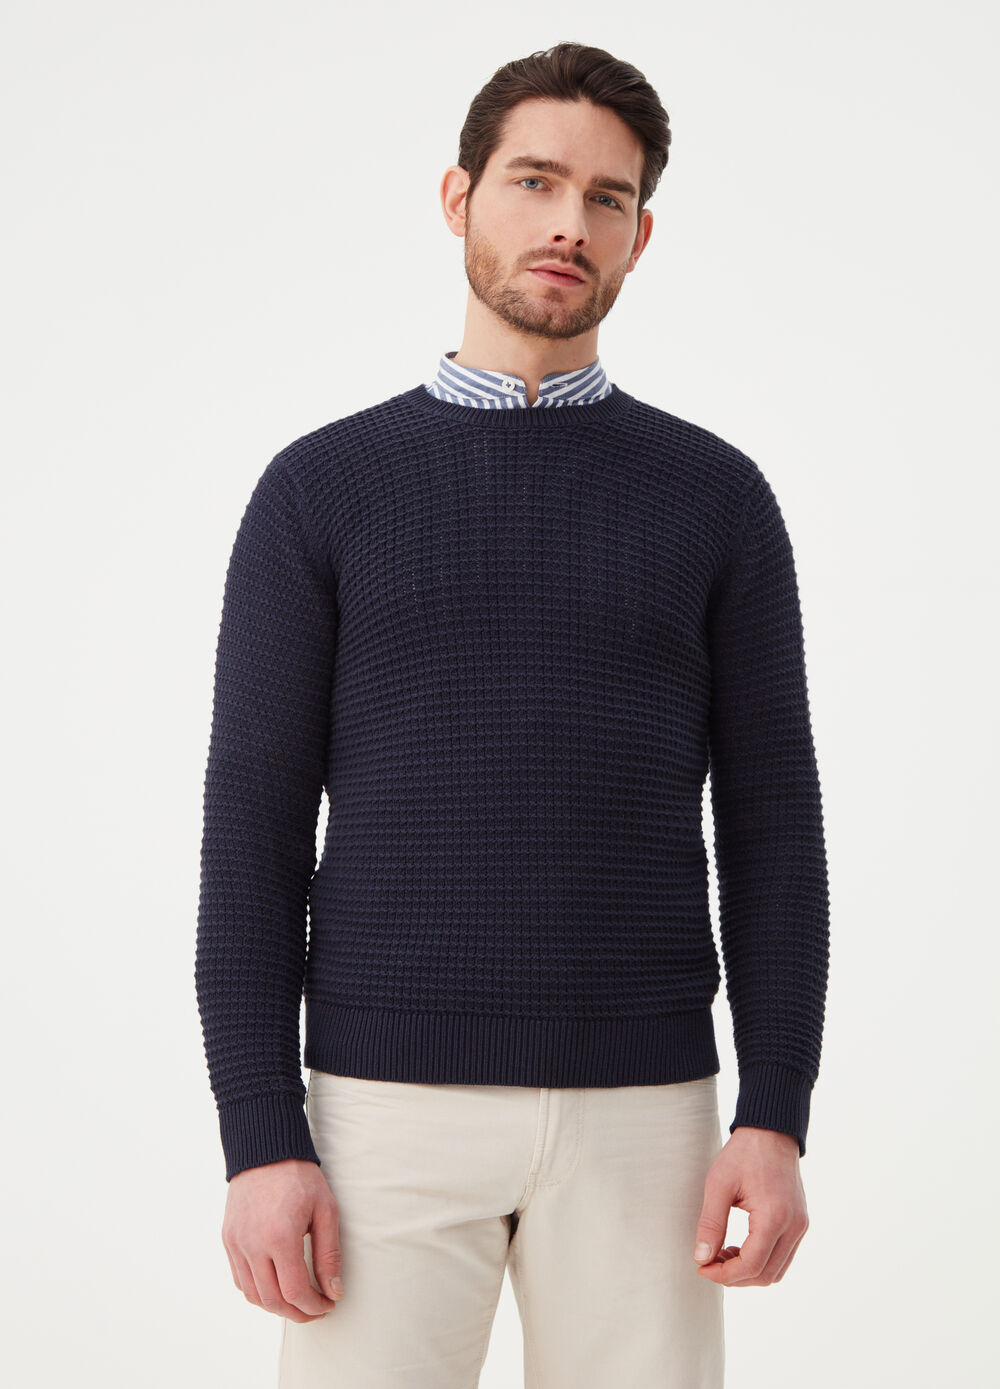 Knitted pullover in 100% cotton with ribbing